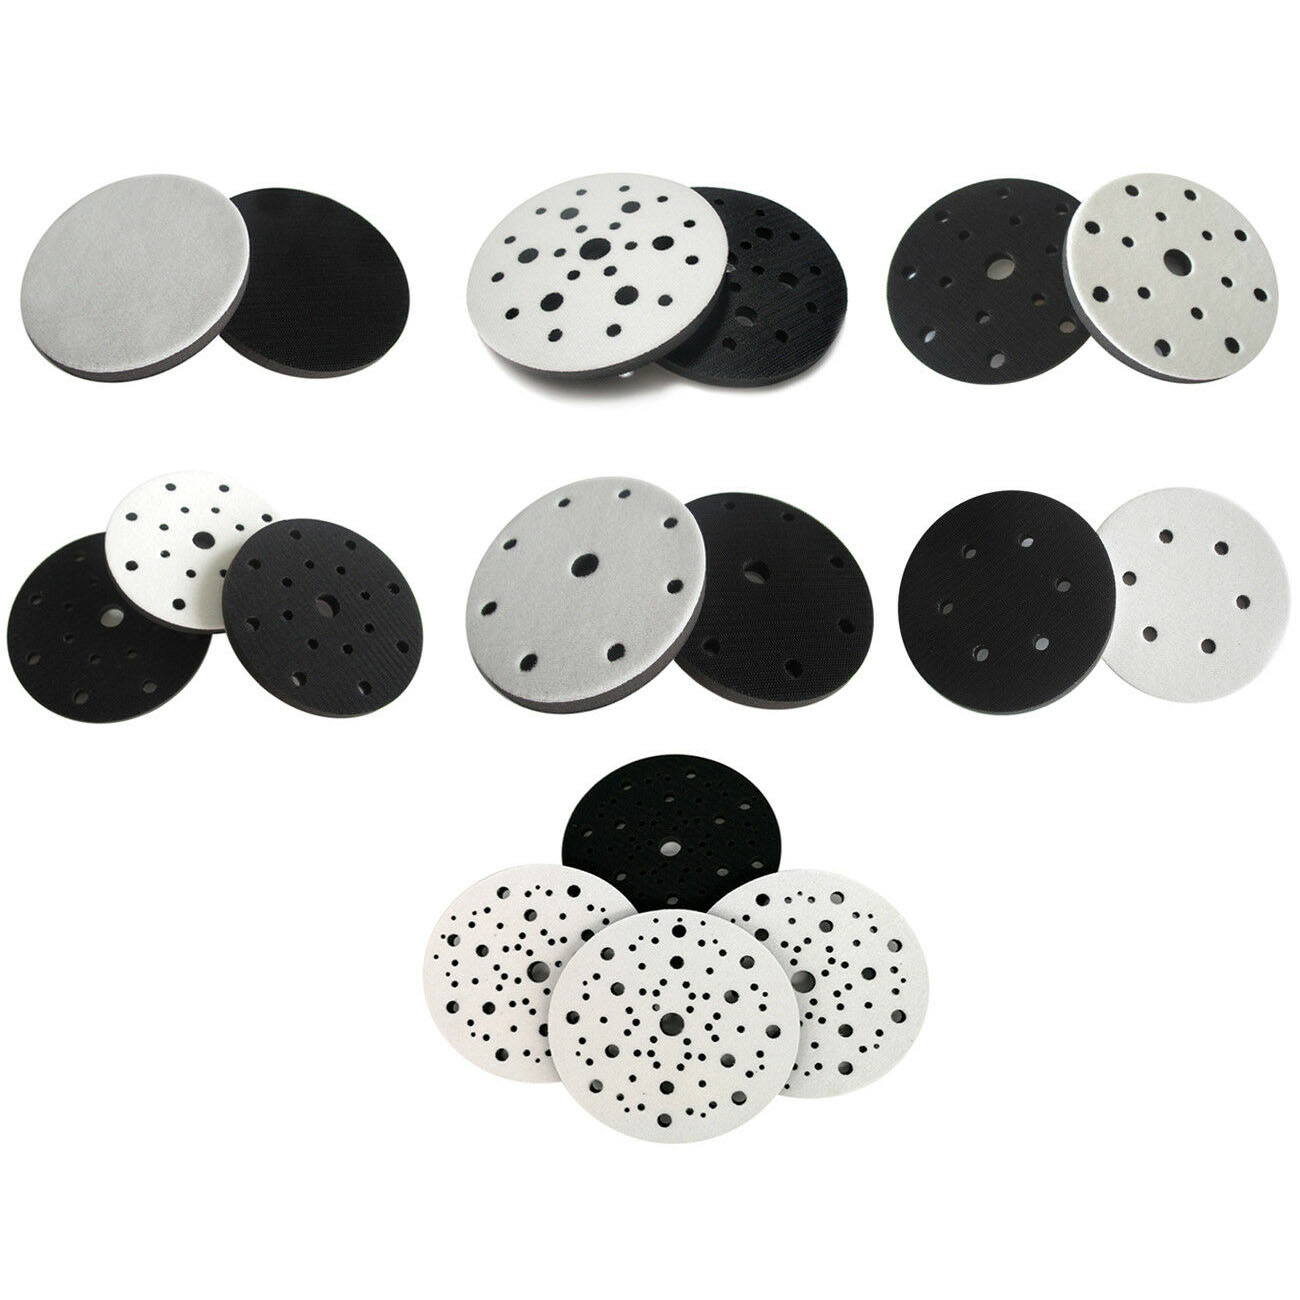 1/3/5Pcs 6 Inch 150mm Soft Sponge Interface Pad For Sanding Pads And Hook&Loop Sanding Discs For Uneven Surface Polishing